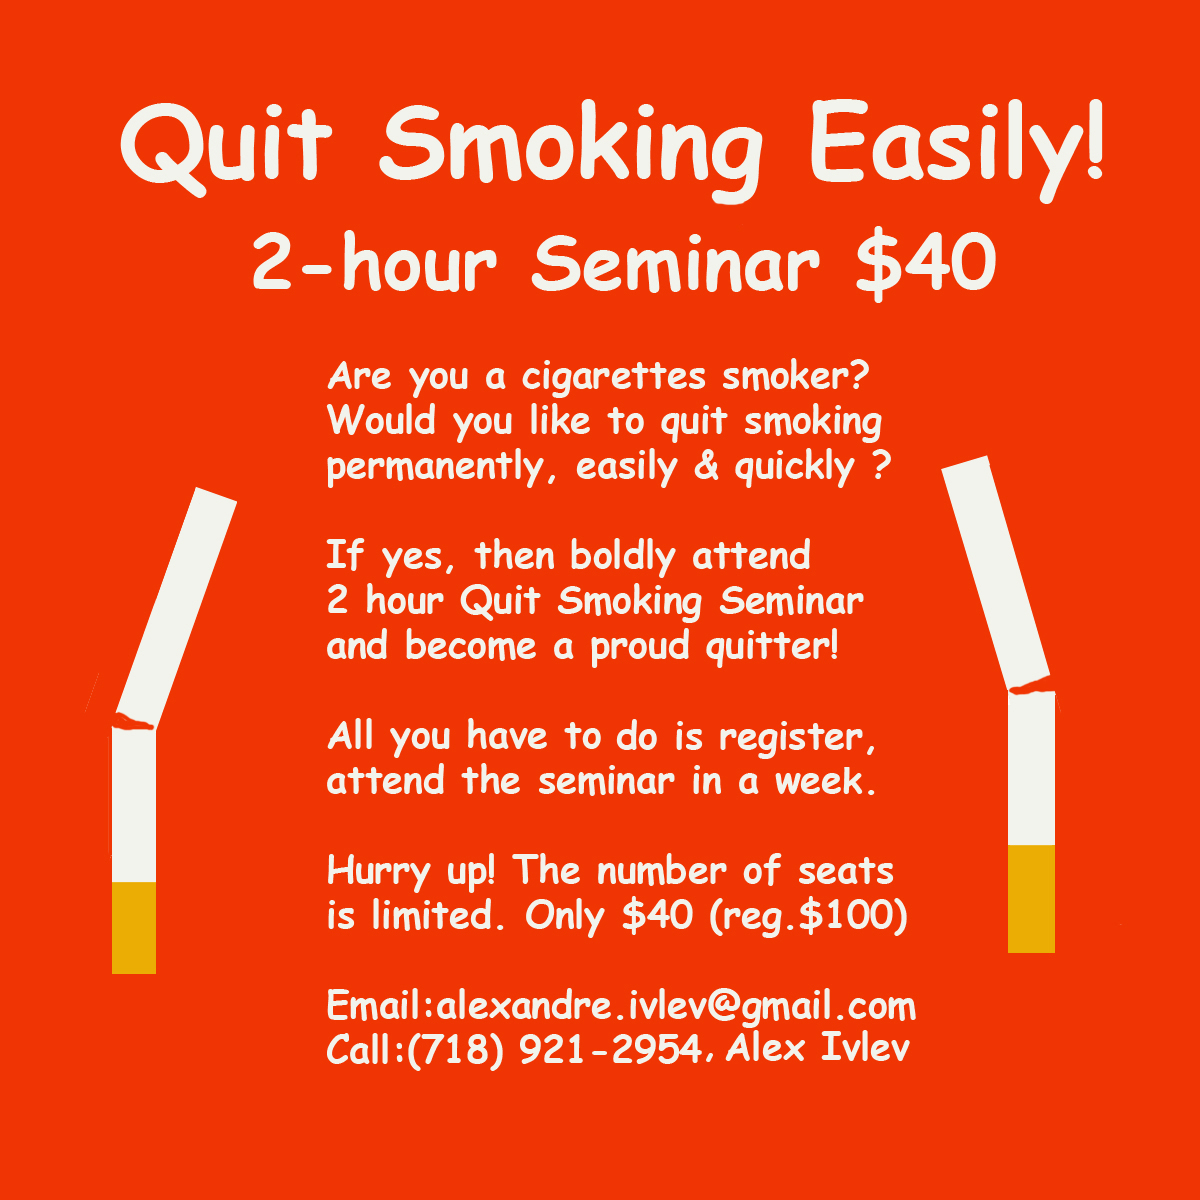 essays about causes and effects of smoking Free essay: smoking has become a trend in today's world, even though people know how harmful it is smoking causes are obvious it will ruin your health and.